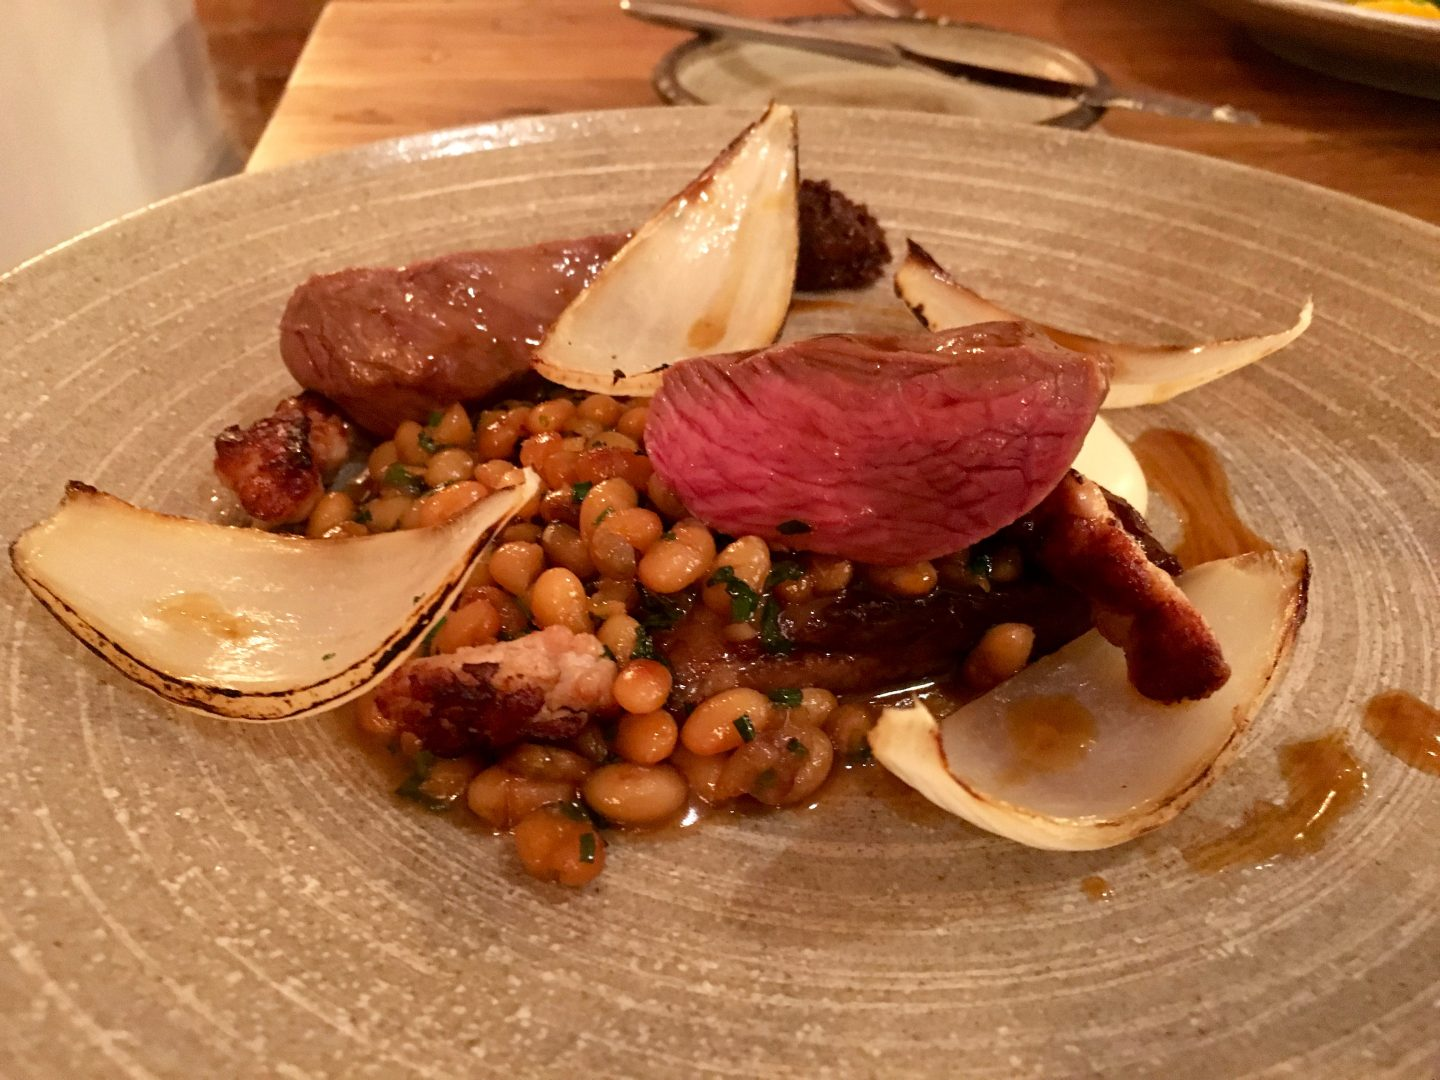 Lamb, onions and beans at the Spotted Duck in Mountsorrel